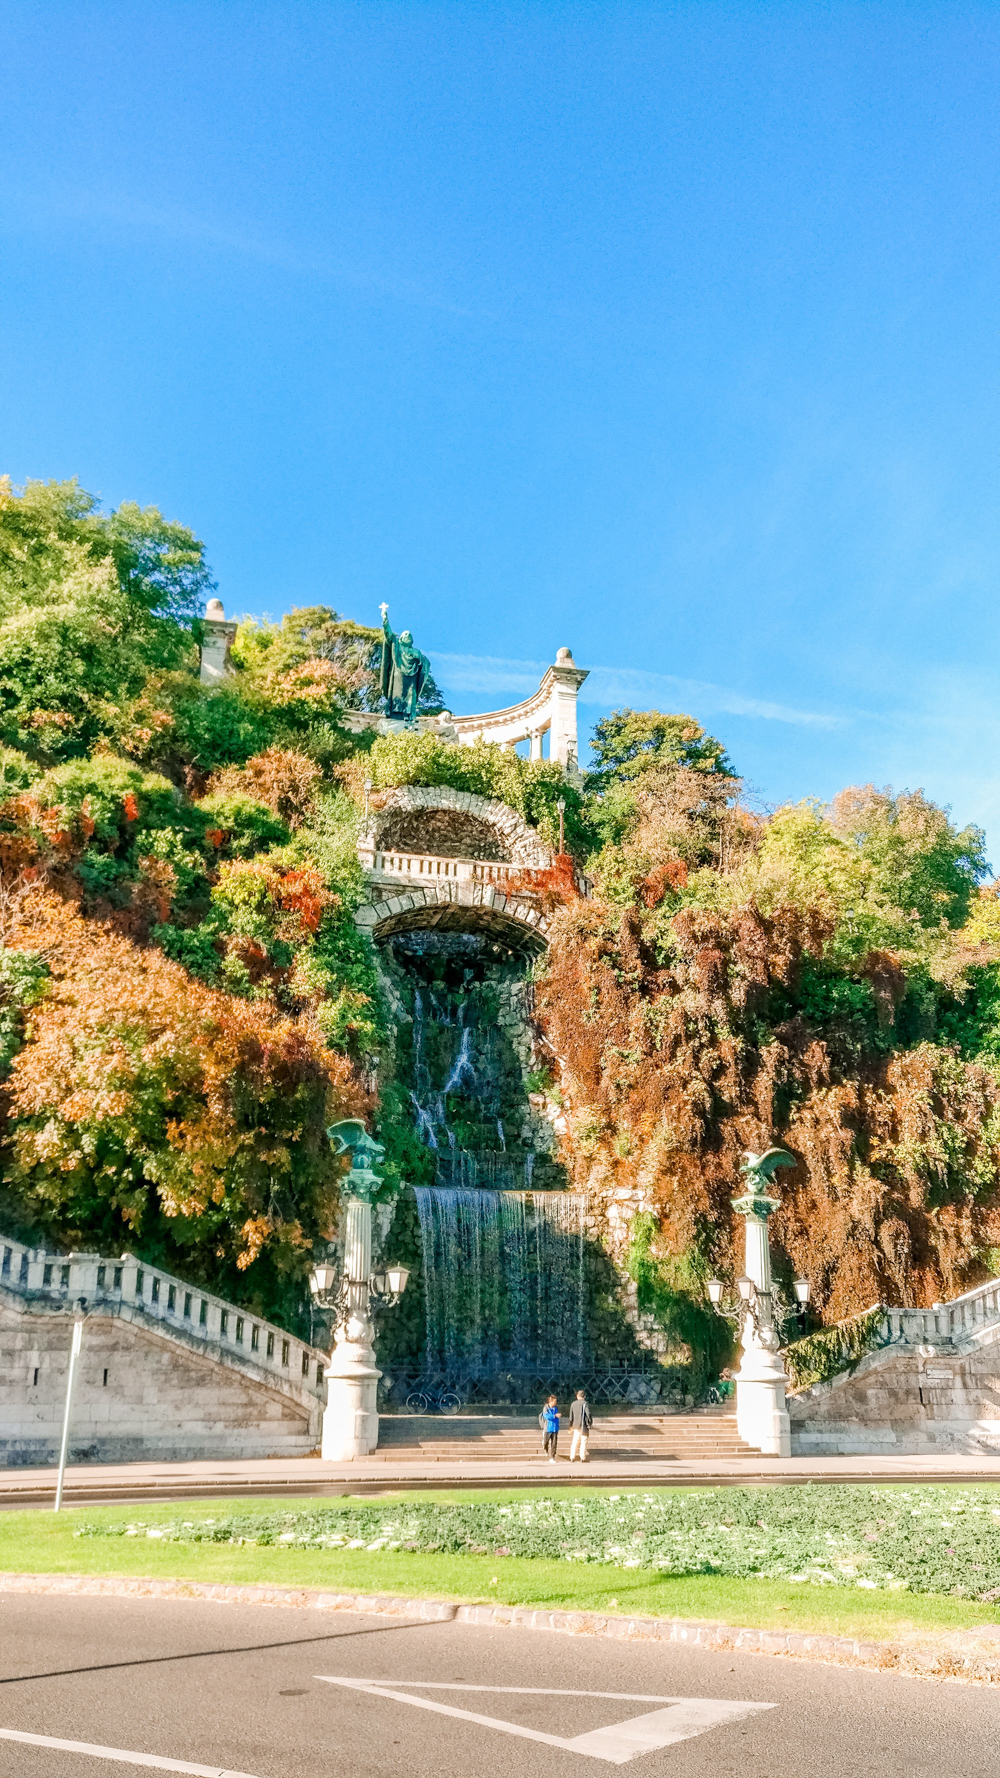 Gellért Statue and the waterfall - How to explore Budapest in 2 days? - a local's travel guide with prices and map | Aliz's Wonderland